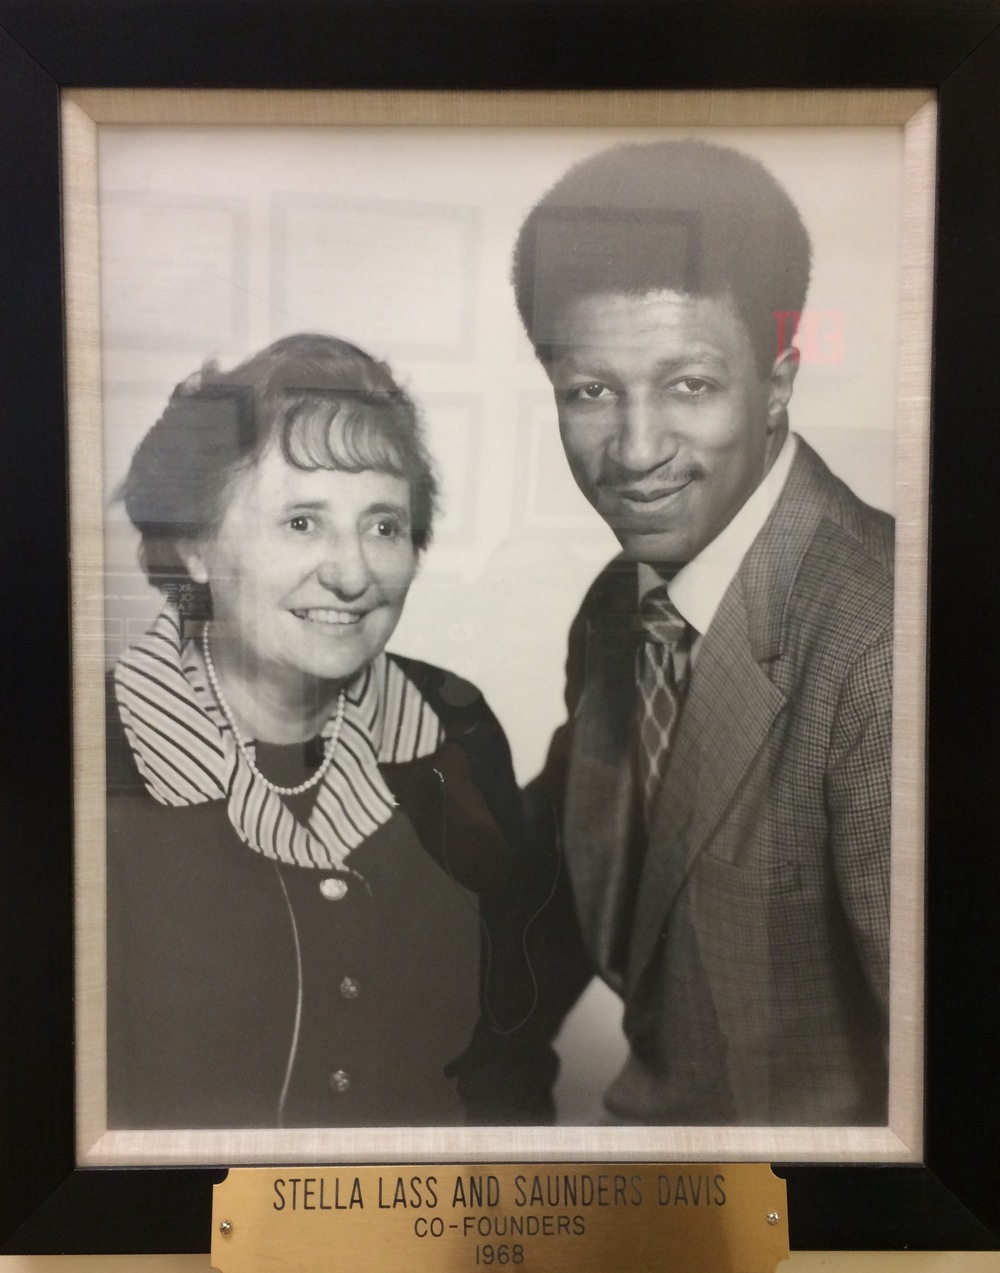 Stella Lass and Saunders Davis are the founders of the Newark School of the Arts in 1968.